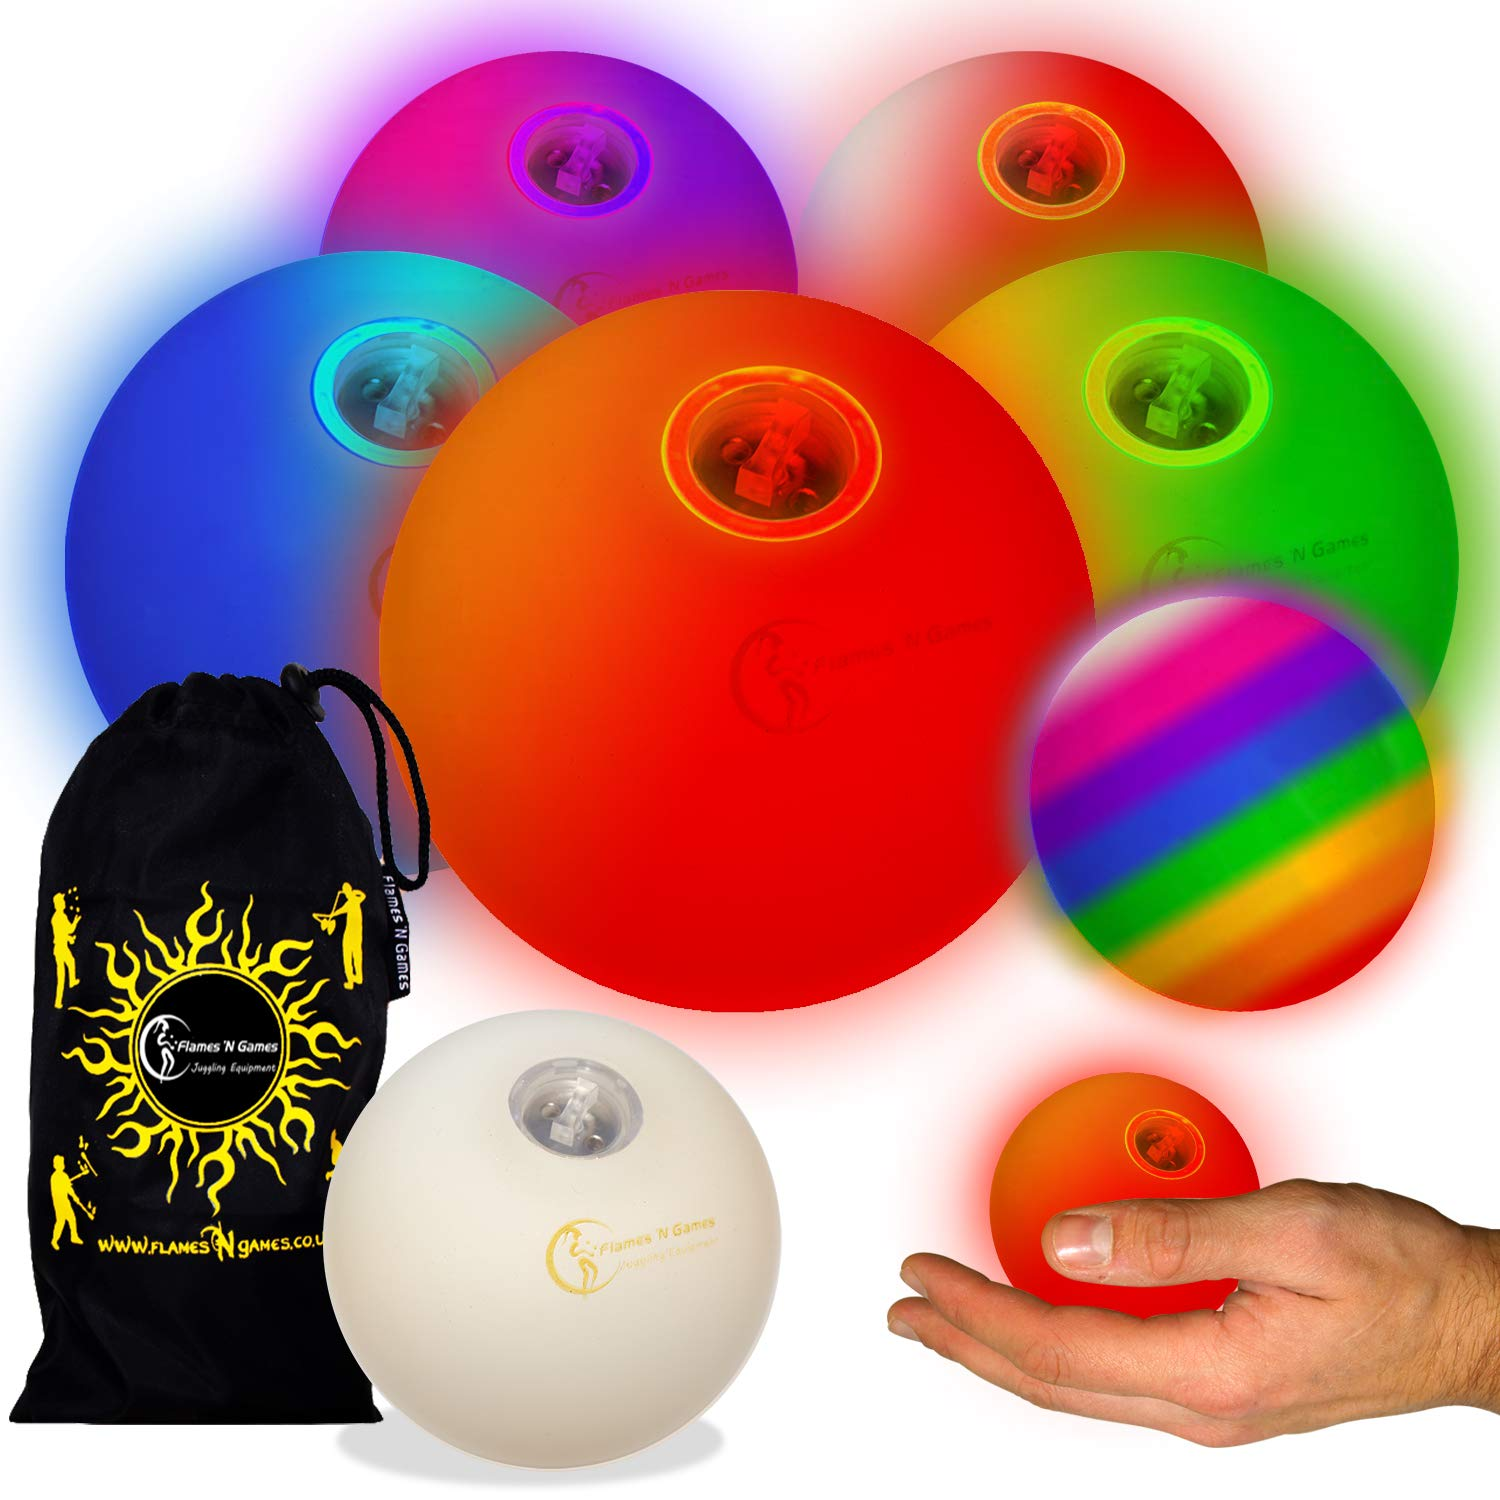 Flames N Games Pro LED Glow Juggling Balls 5X (Slow Fade Rainbow Effect) Ultra Bright Battery Powered Glow LED Juggling Ball Set with Travel Bag. (Set of 5)